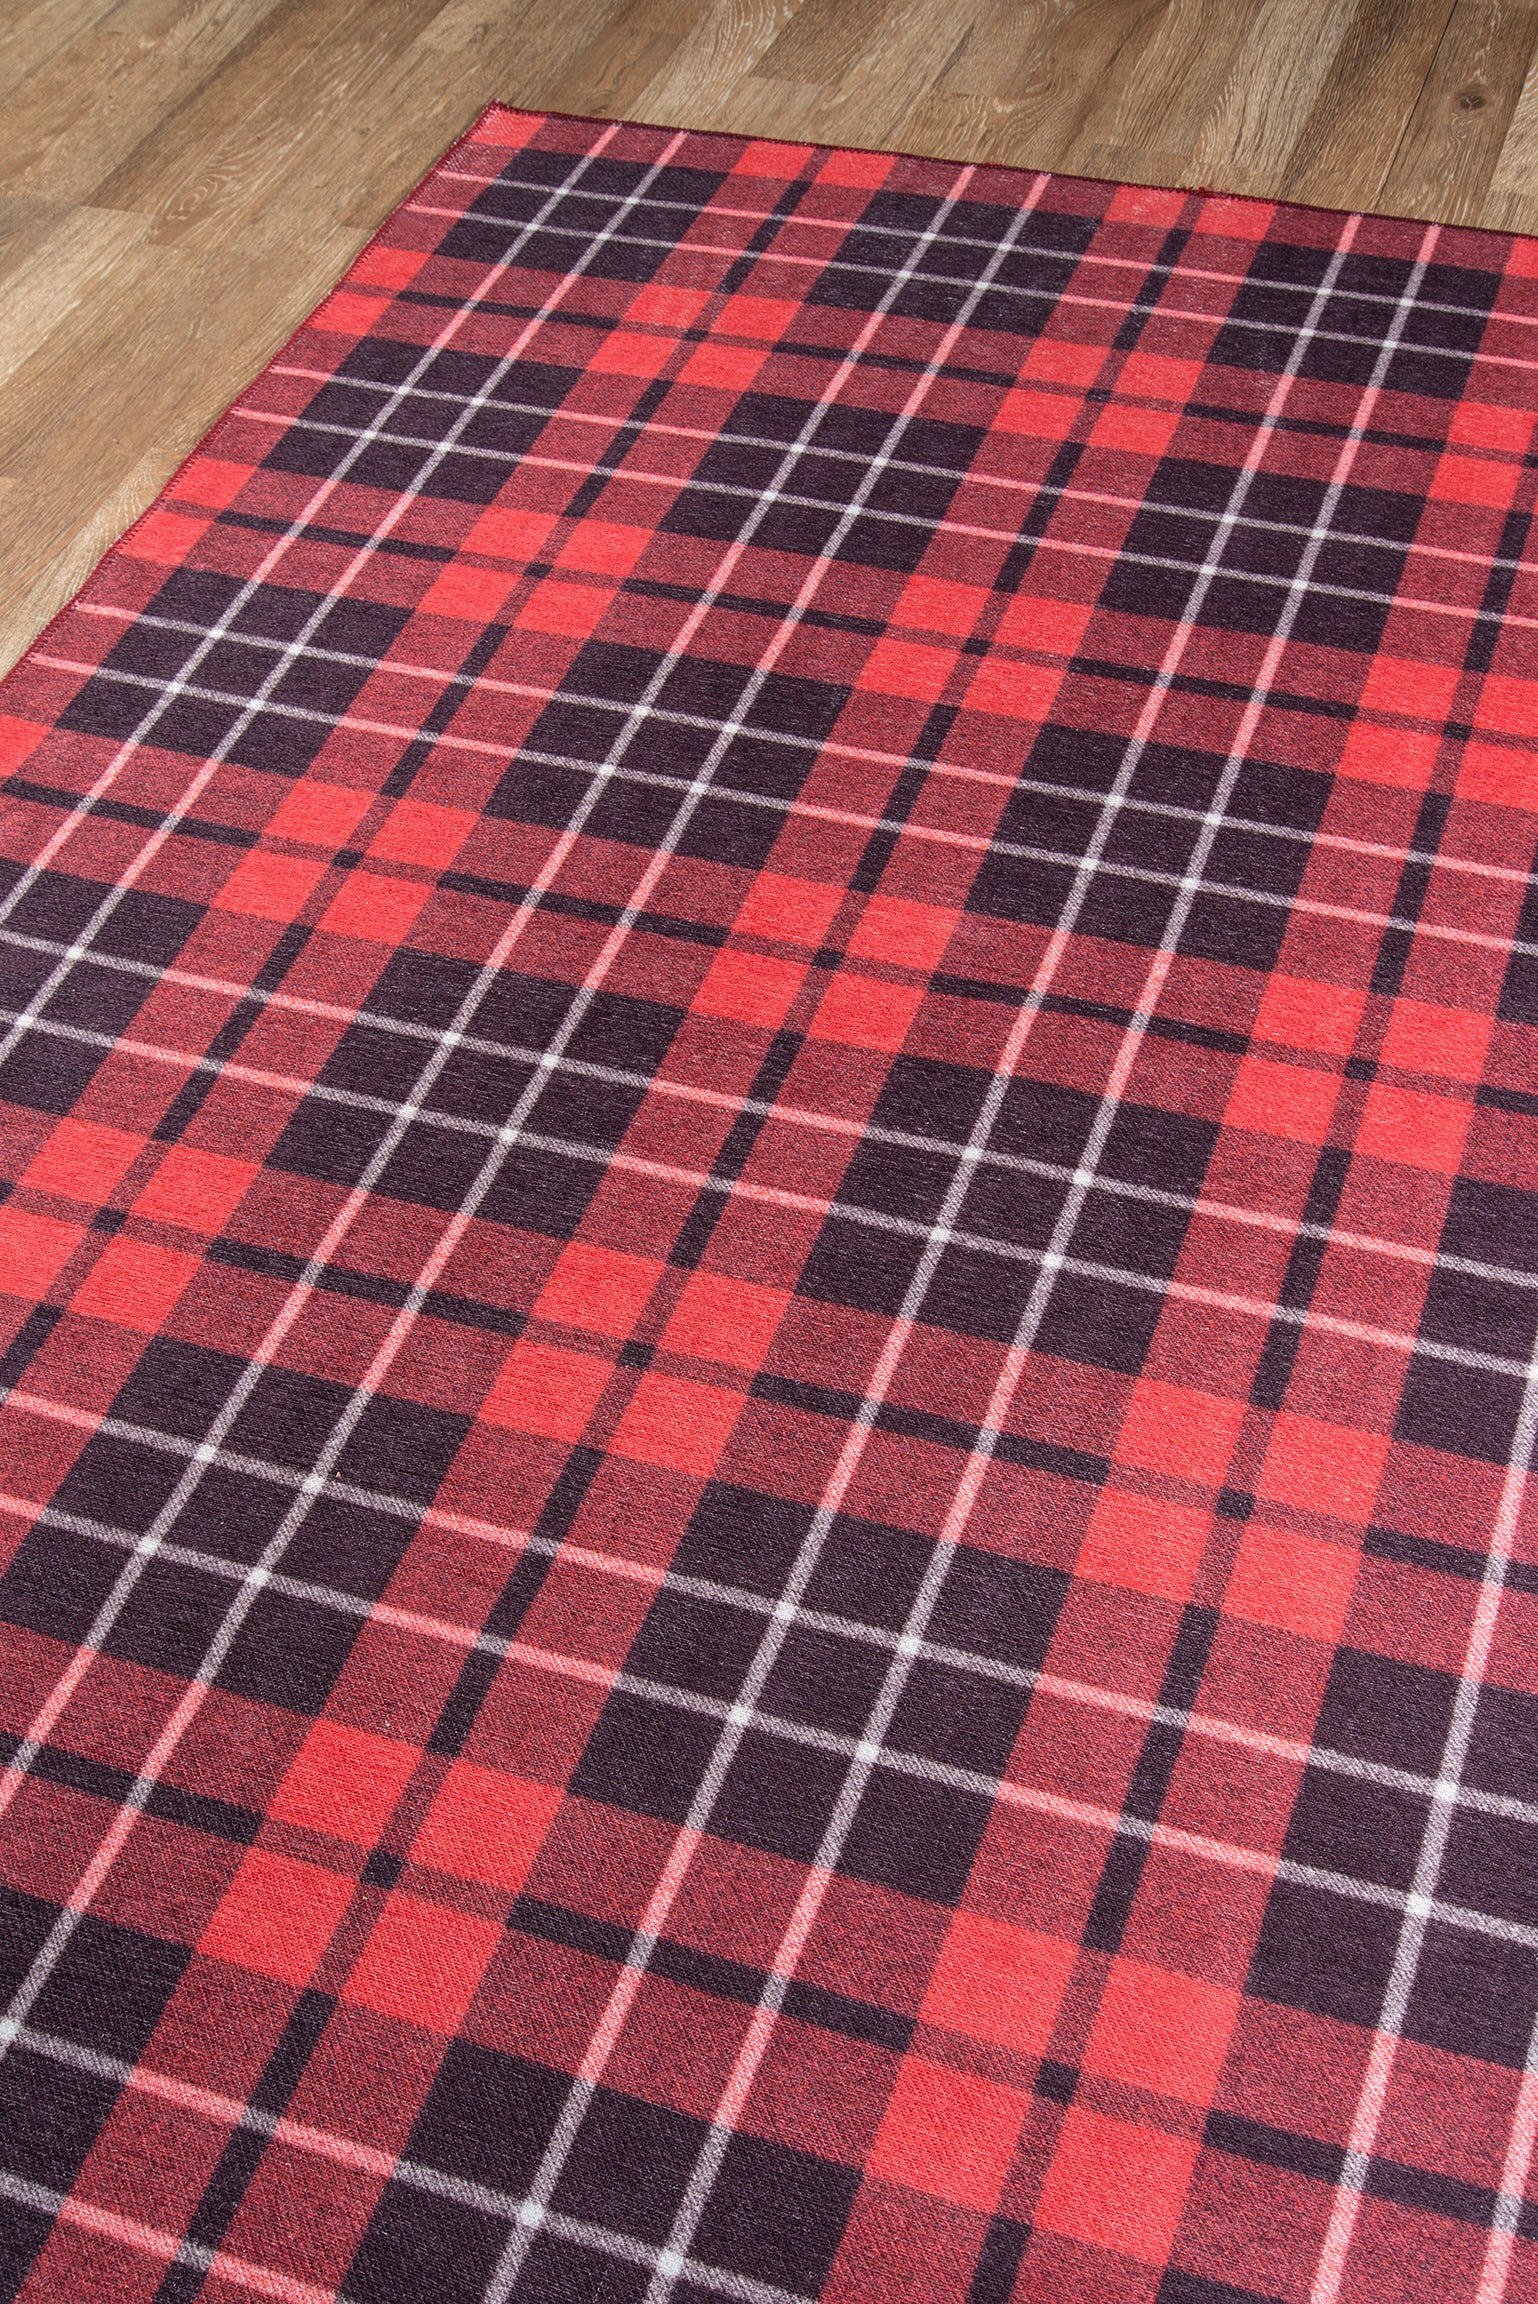 Red Plaid Tartan Area Rug - Novogratz - District